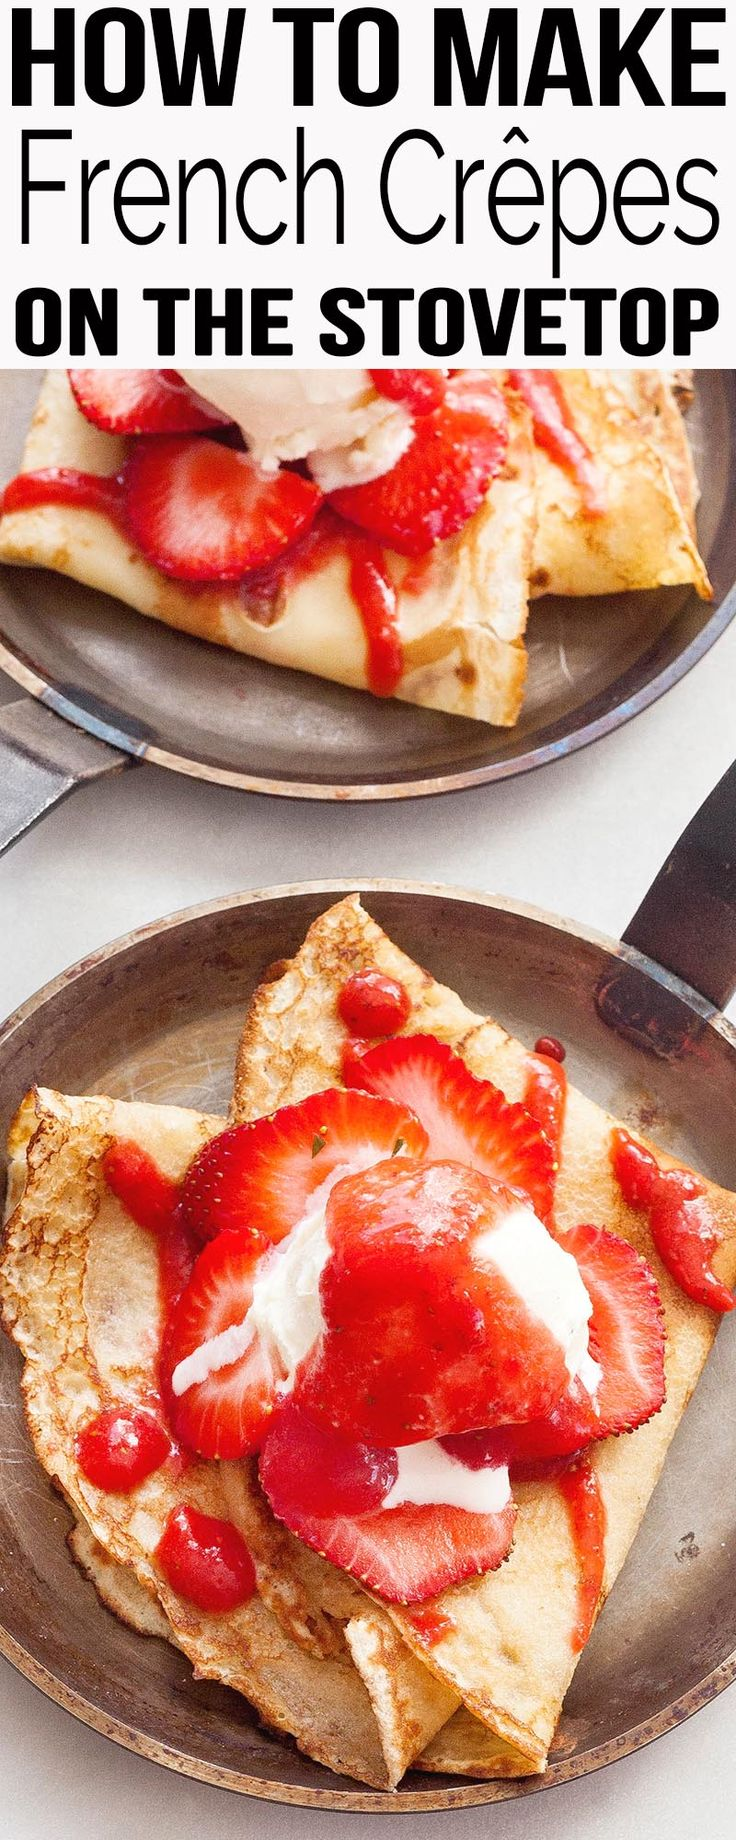 Homemade French crepes are so fun and surprisingly EASY! Like making pancakes! Simple blender batter and a nonstick skillet. Lots of ideas for favorite ways to fill and serve.